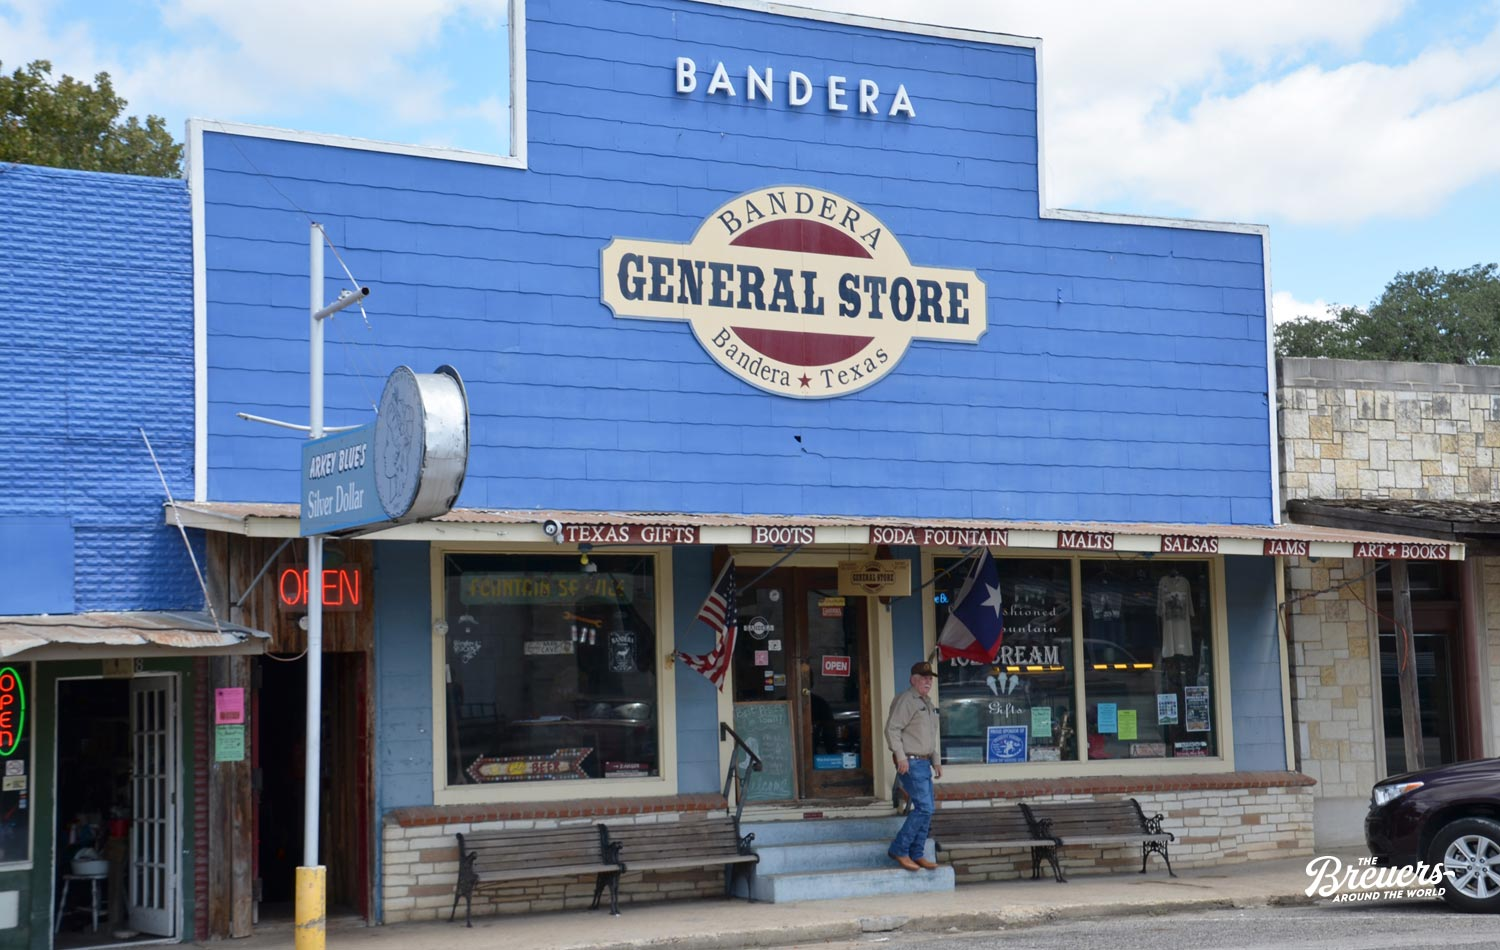 General Store in Bandera Texas